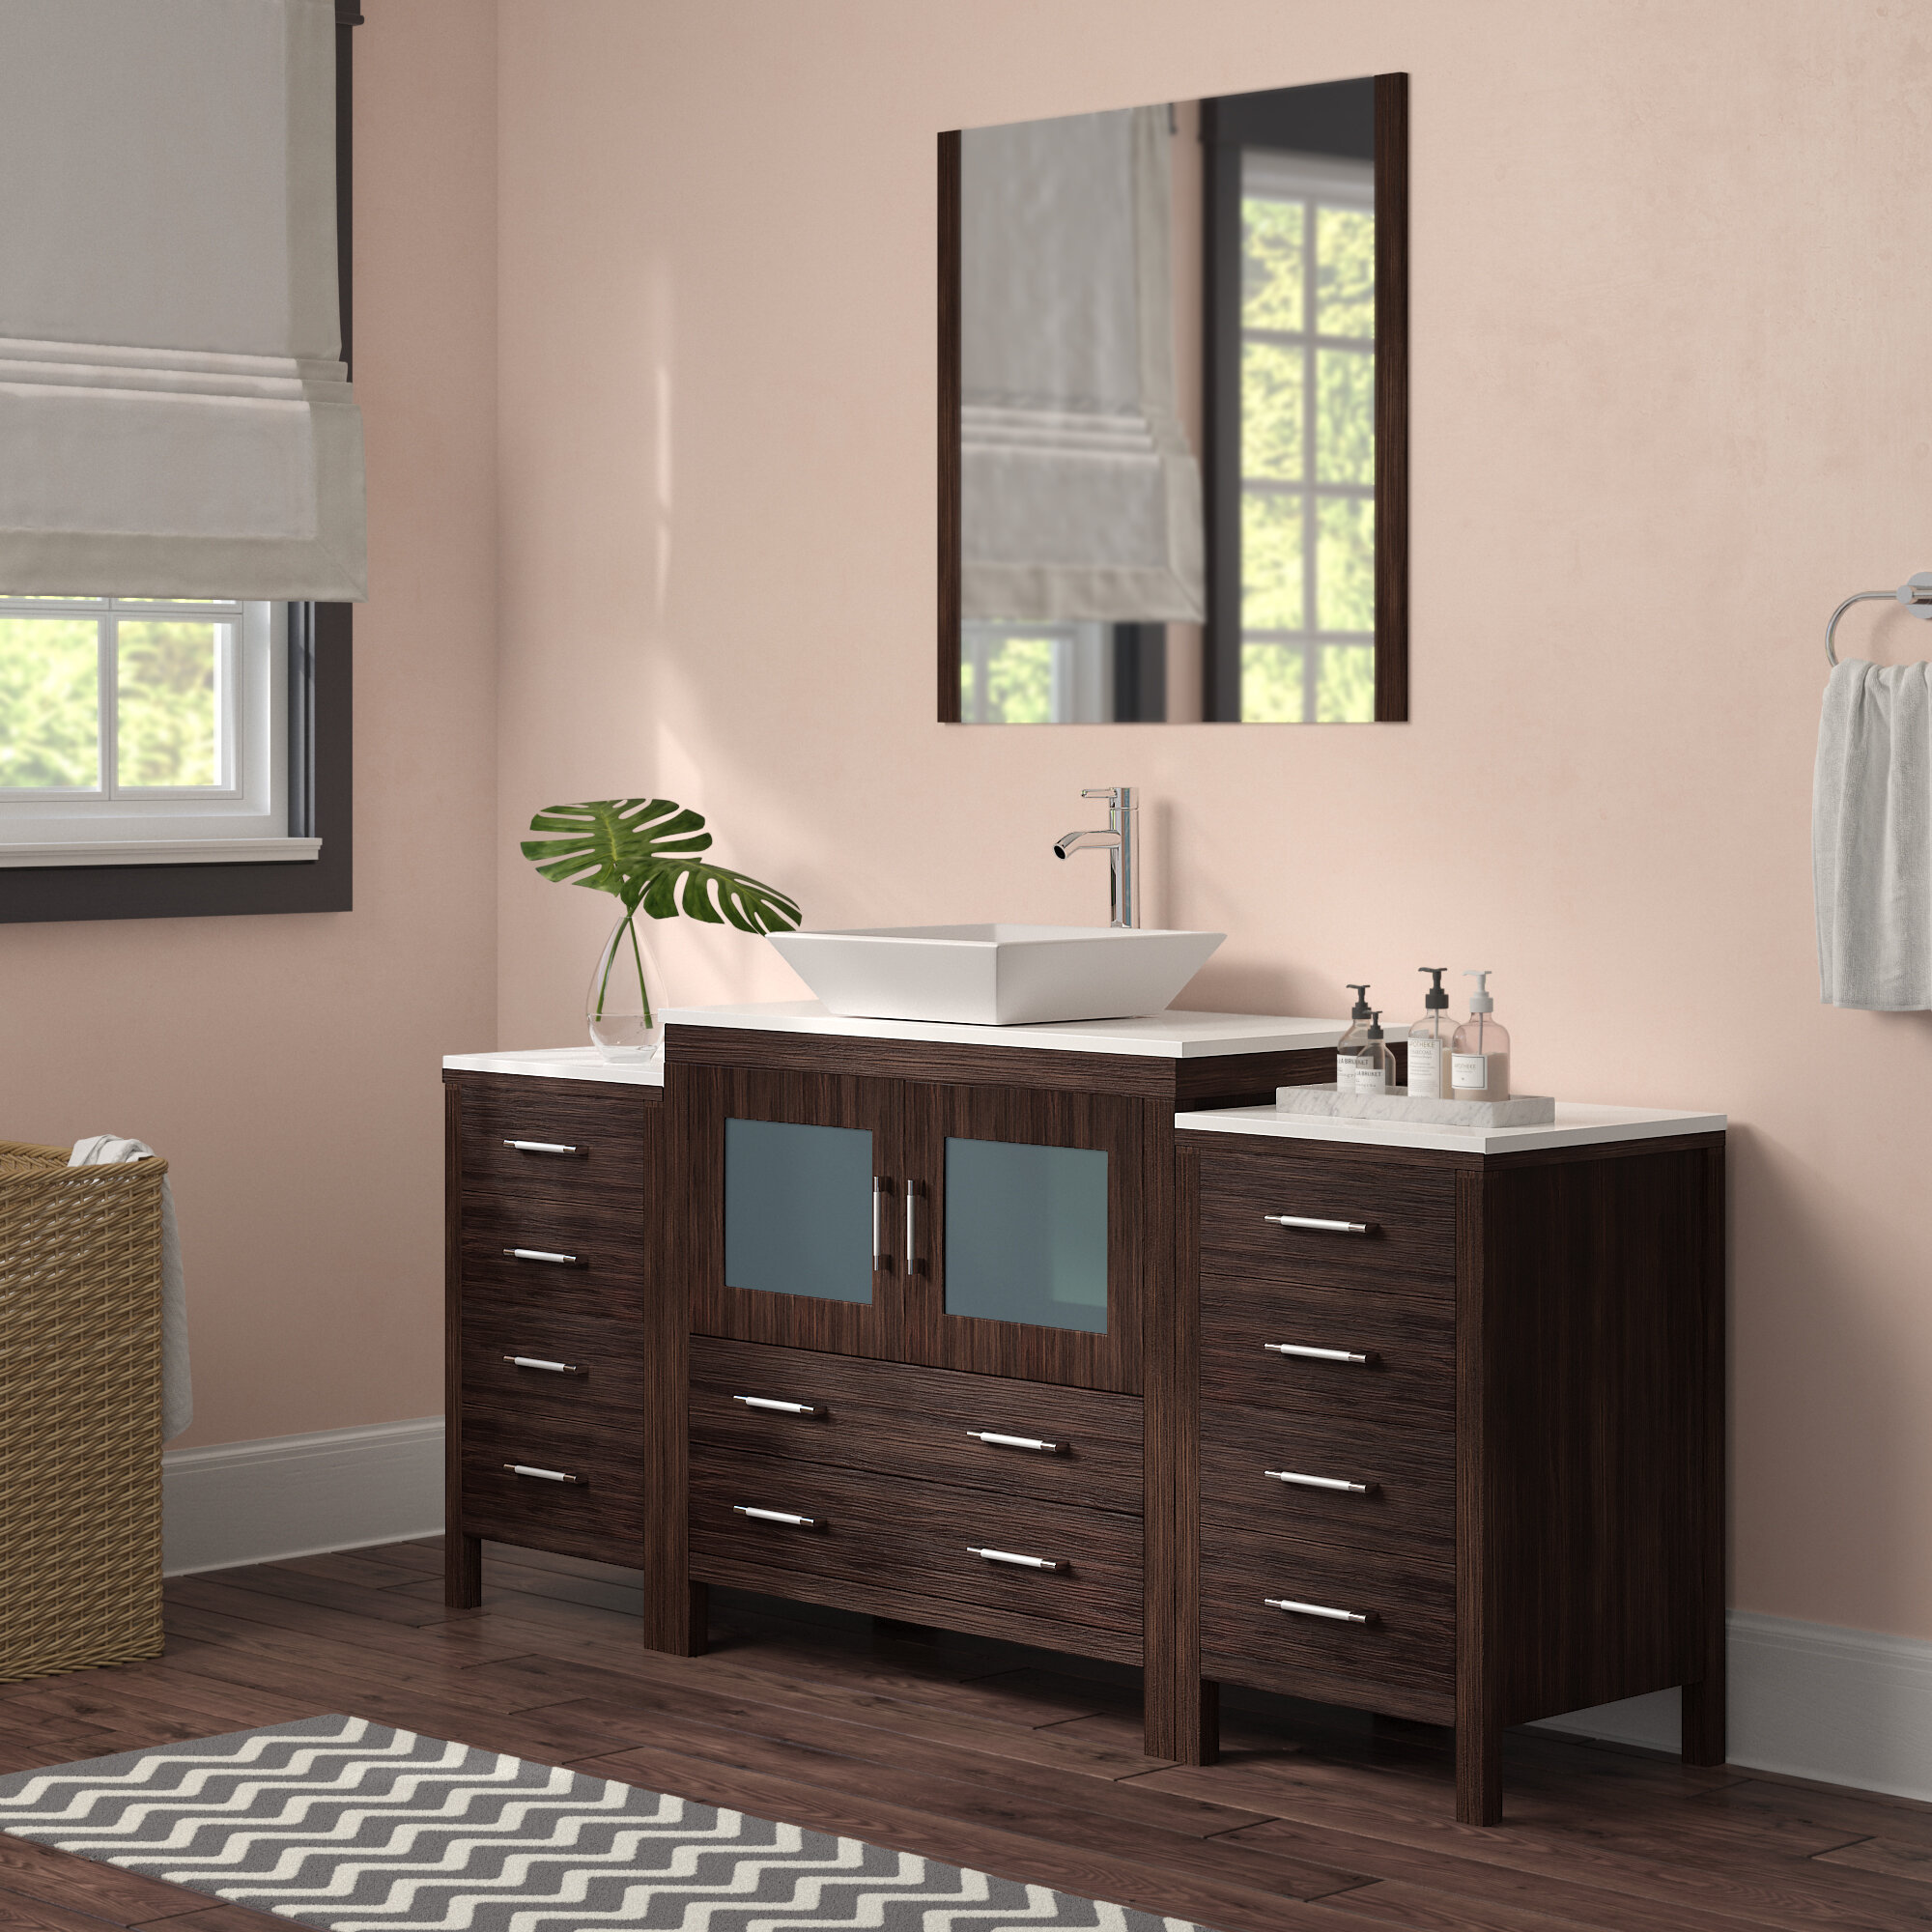 Brayden Studio Stanardsville 71 Single Bathroom Vanity Set With White Stone Top And Mirror Reviews Wayfair